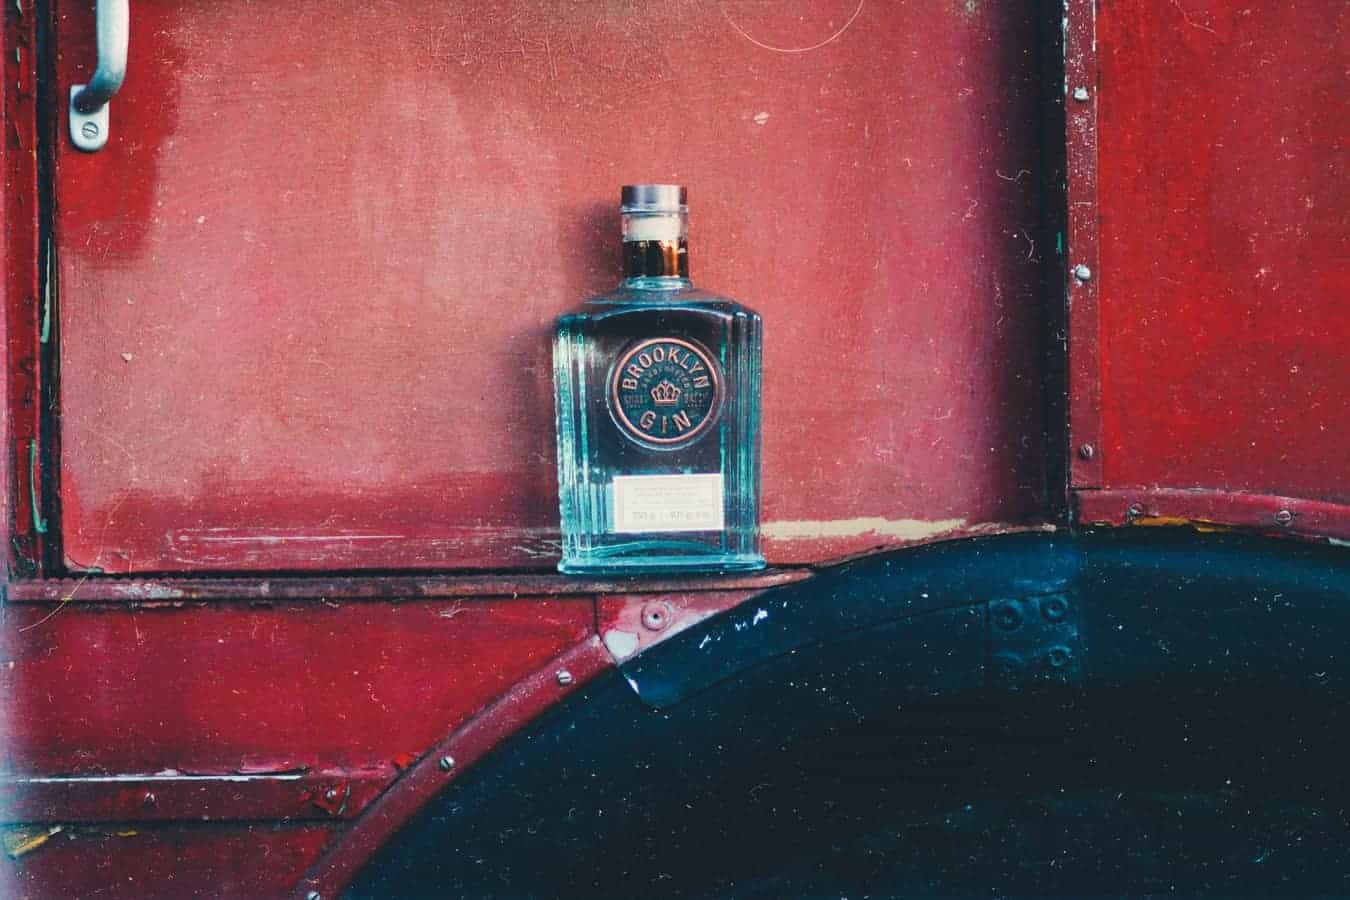 A square blue glass bottle of gin against a red wall